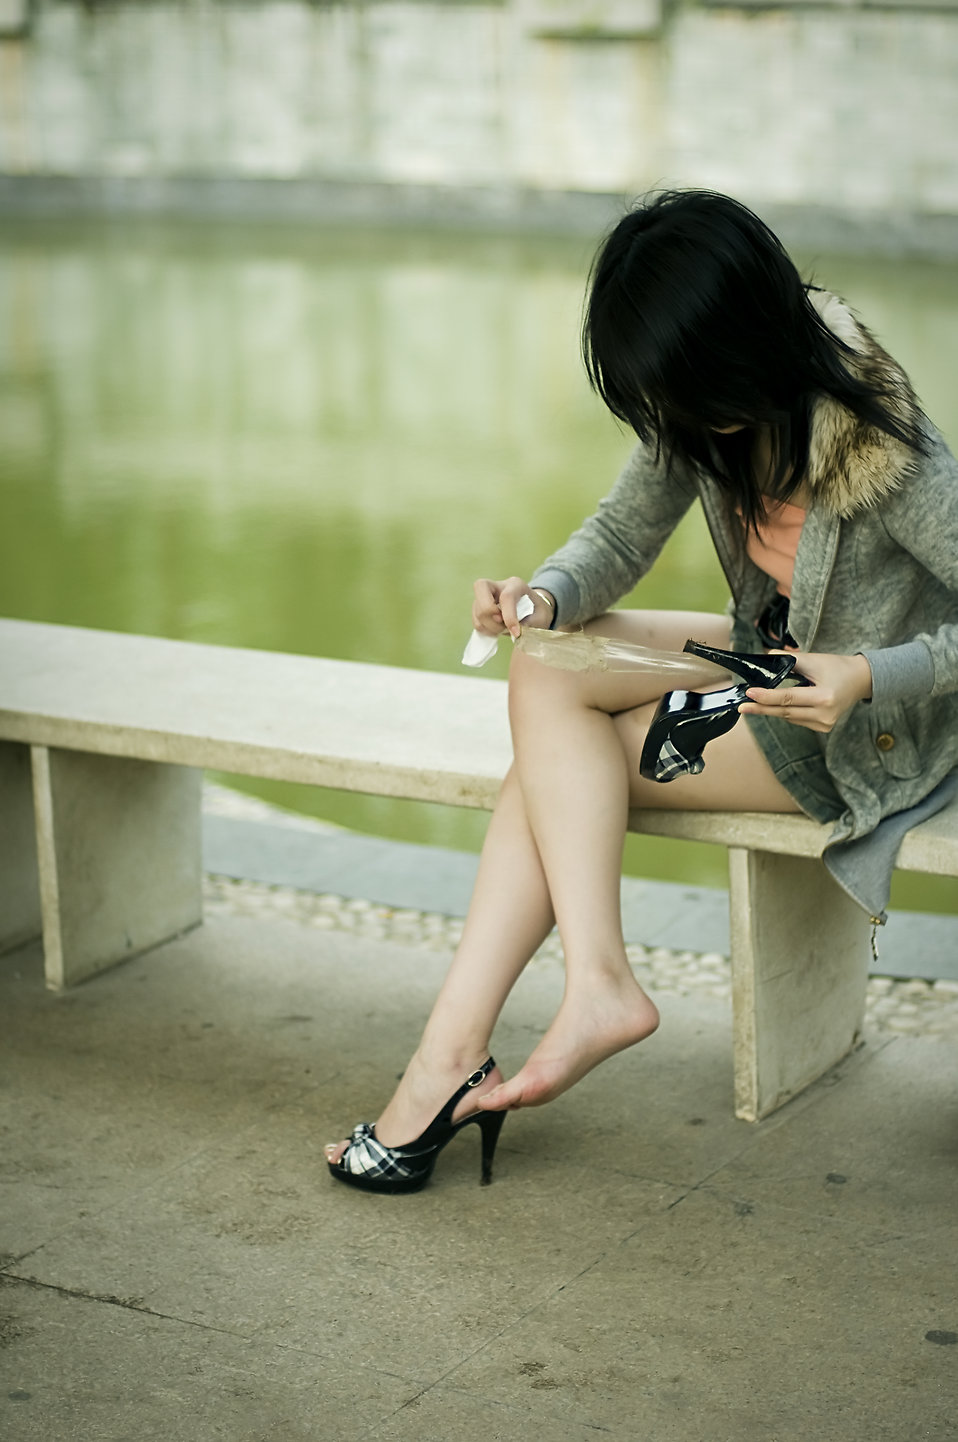 A beautiful Chinese girl sitting on a bench fixing her shoe : Free Stock Photo